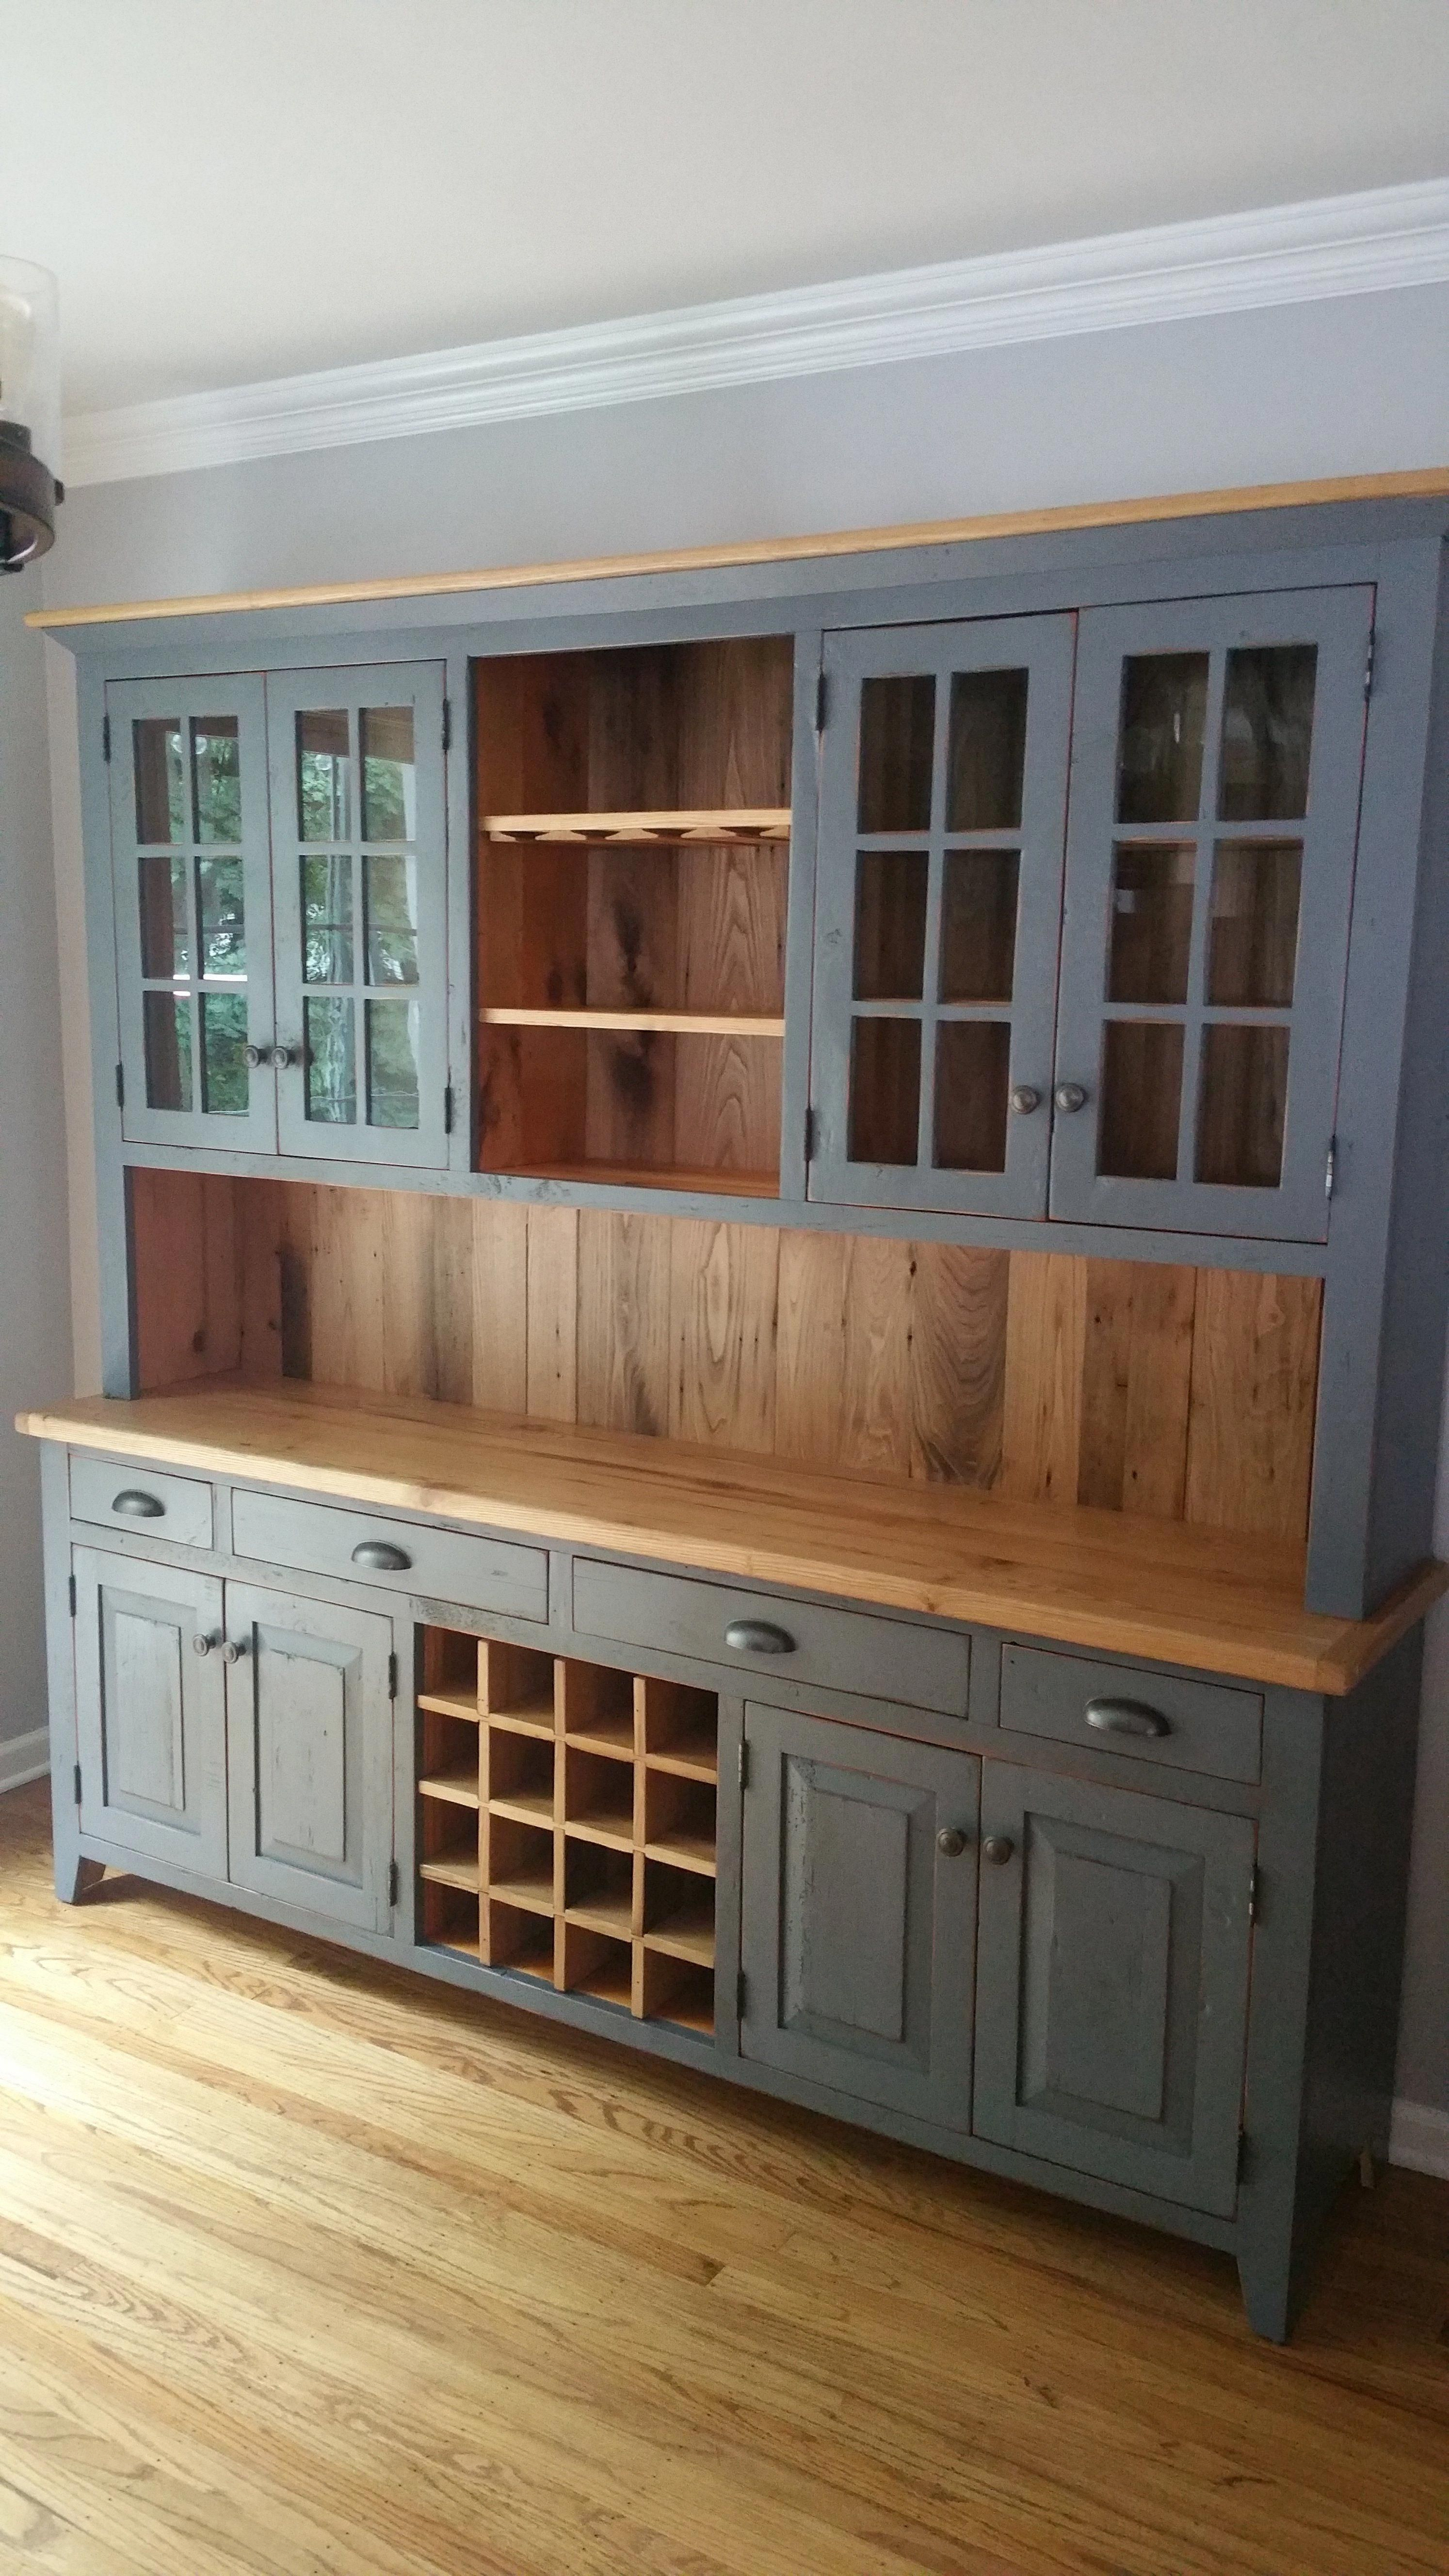 The Beauty Of The Farmhouse Kitchen Cabinet Does Not Simply Happen When Fixer Upper Debut Kitchen Renovation Farmhouse Kitchen Cabinets Farmhouse Style Kitchen